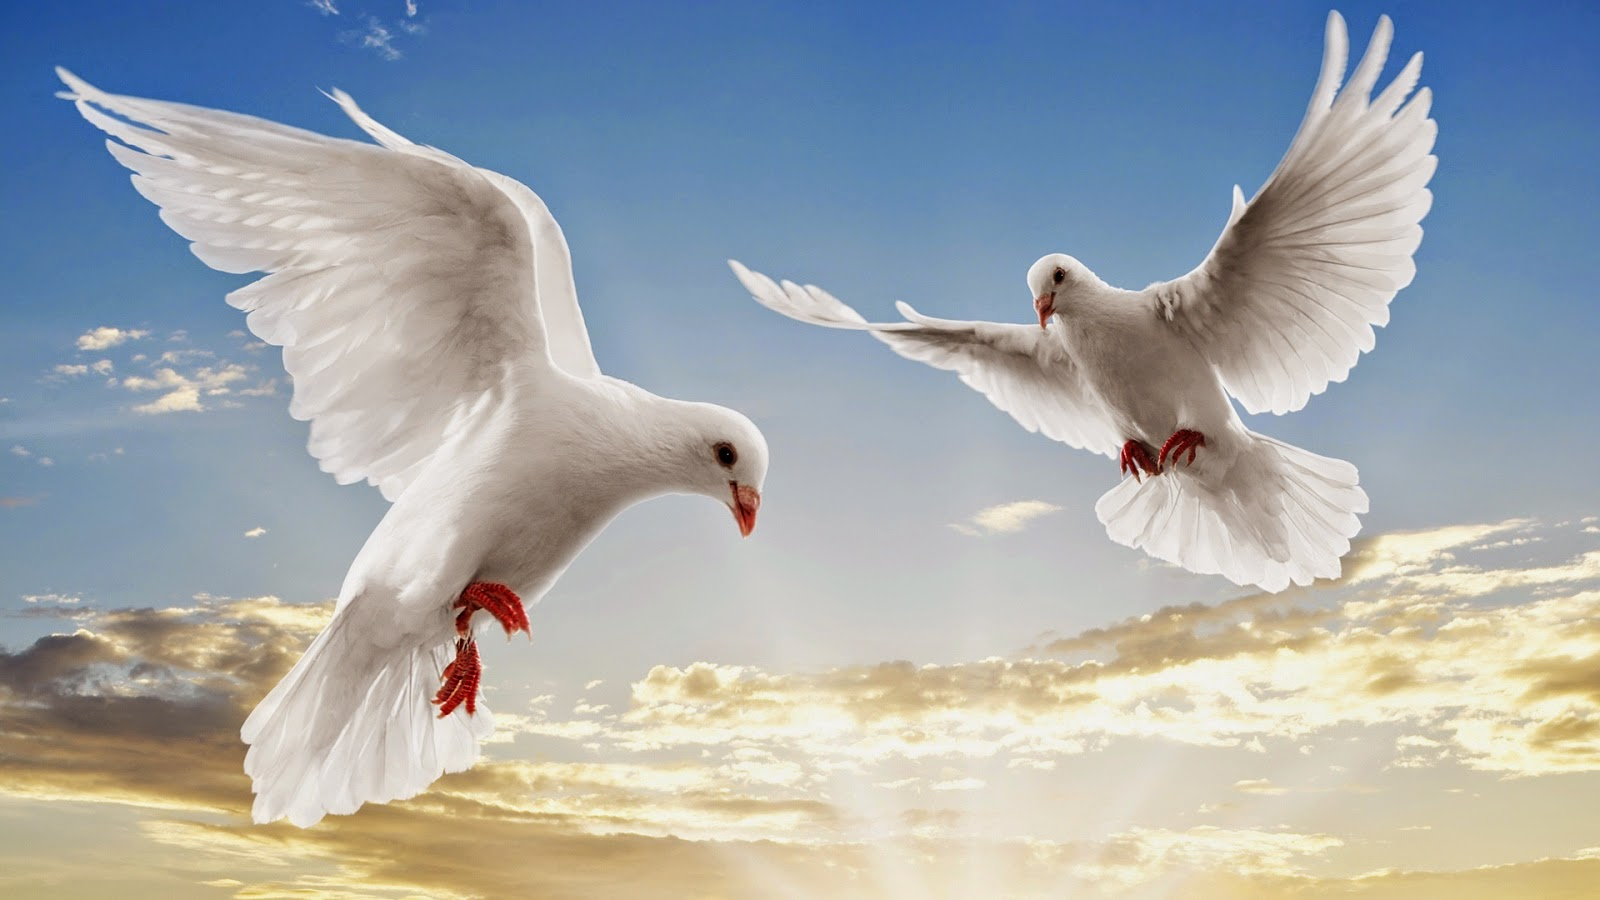 dove wallpapers hd beautiful wallpapers collection 2014